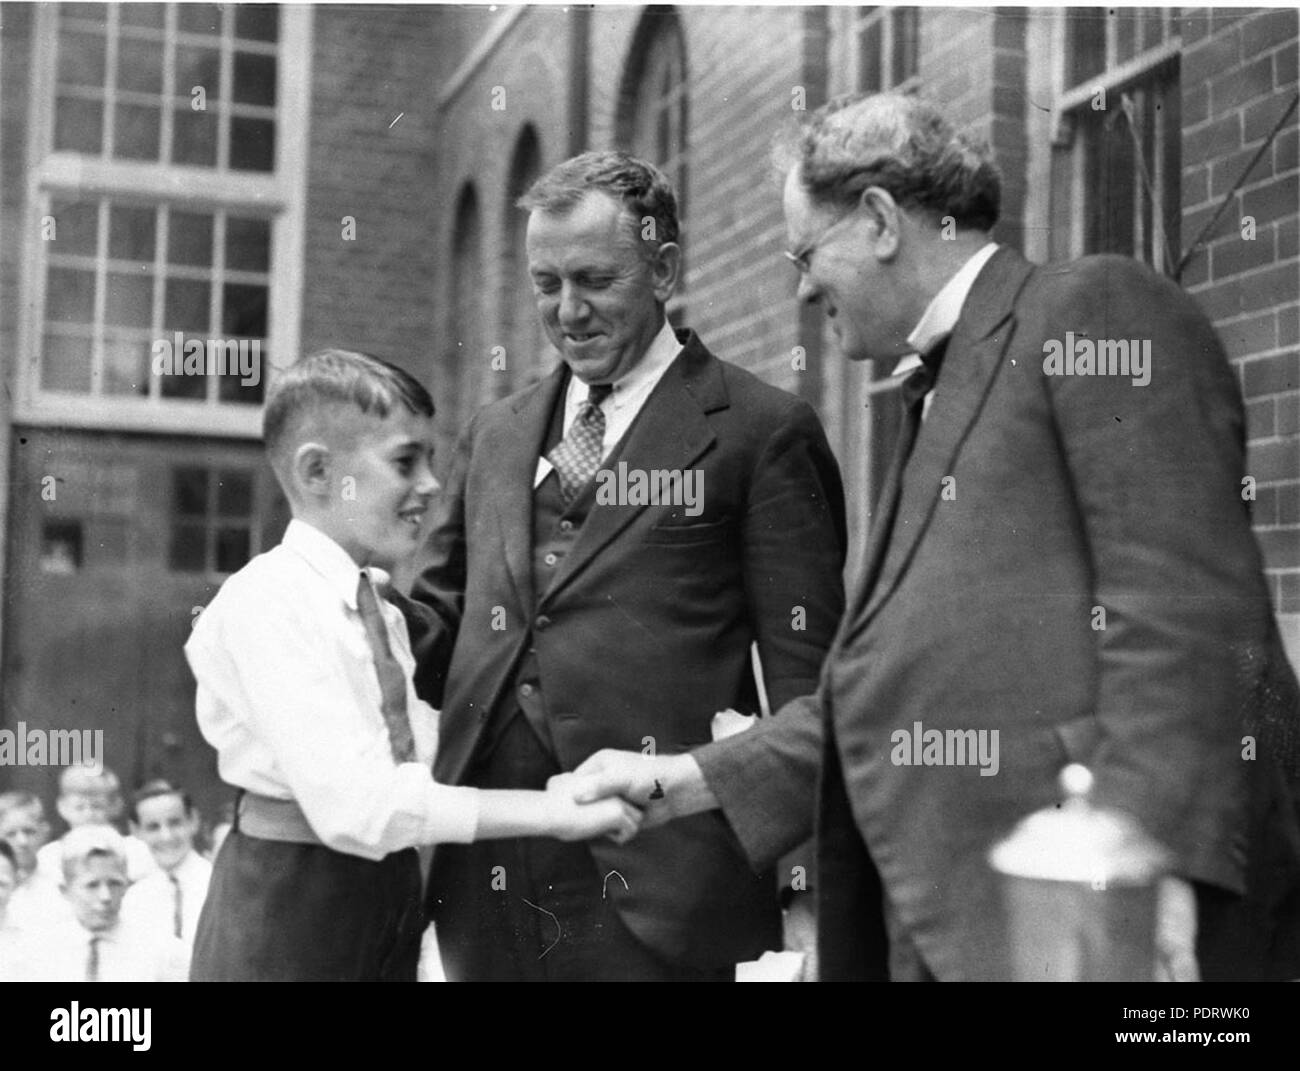 161 SLNSW 43234 Director of Education G Ross Thomas shakes hands with the dux of Drummoyne Primary School - Stock Image